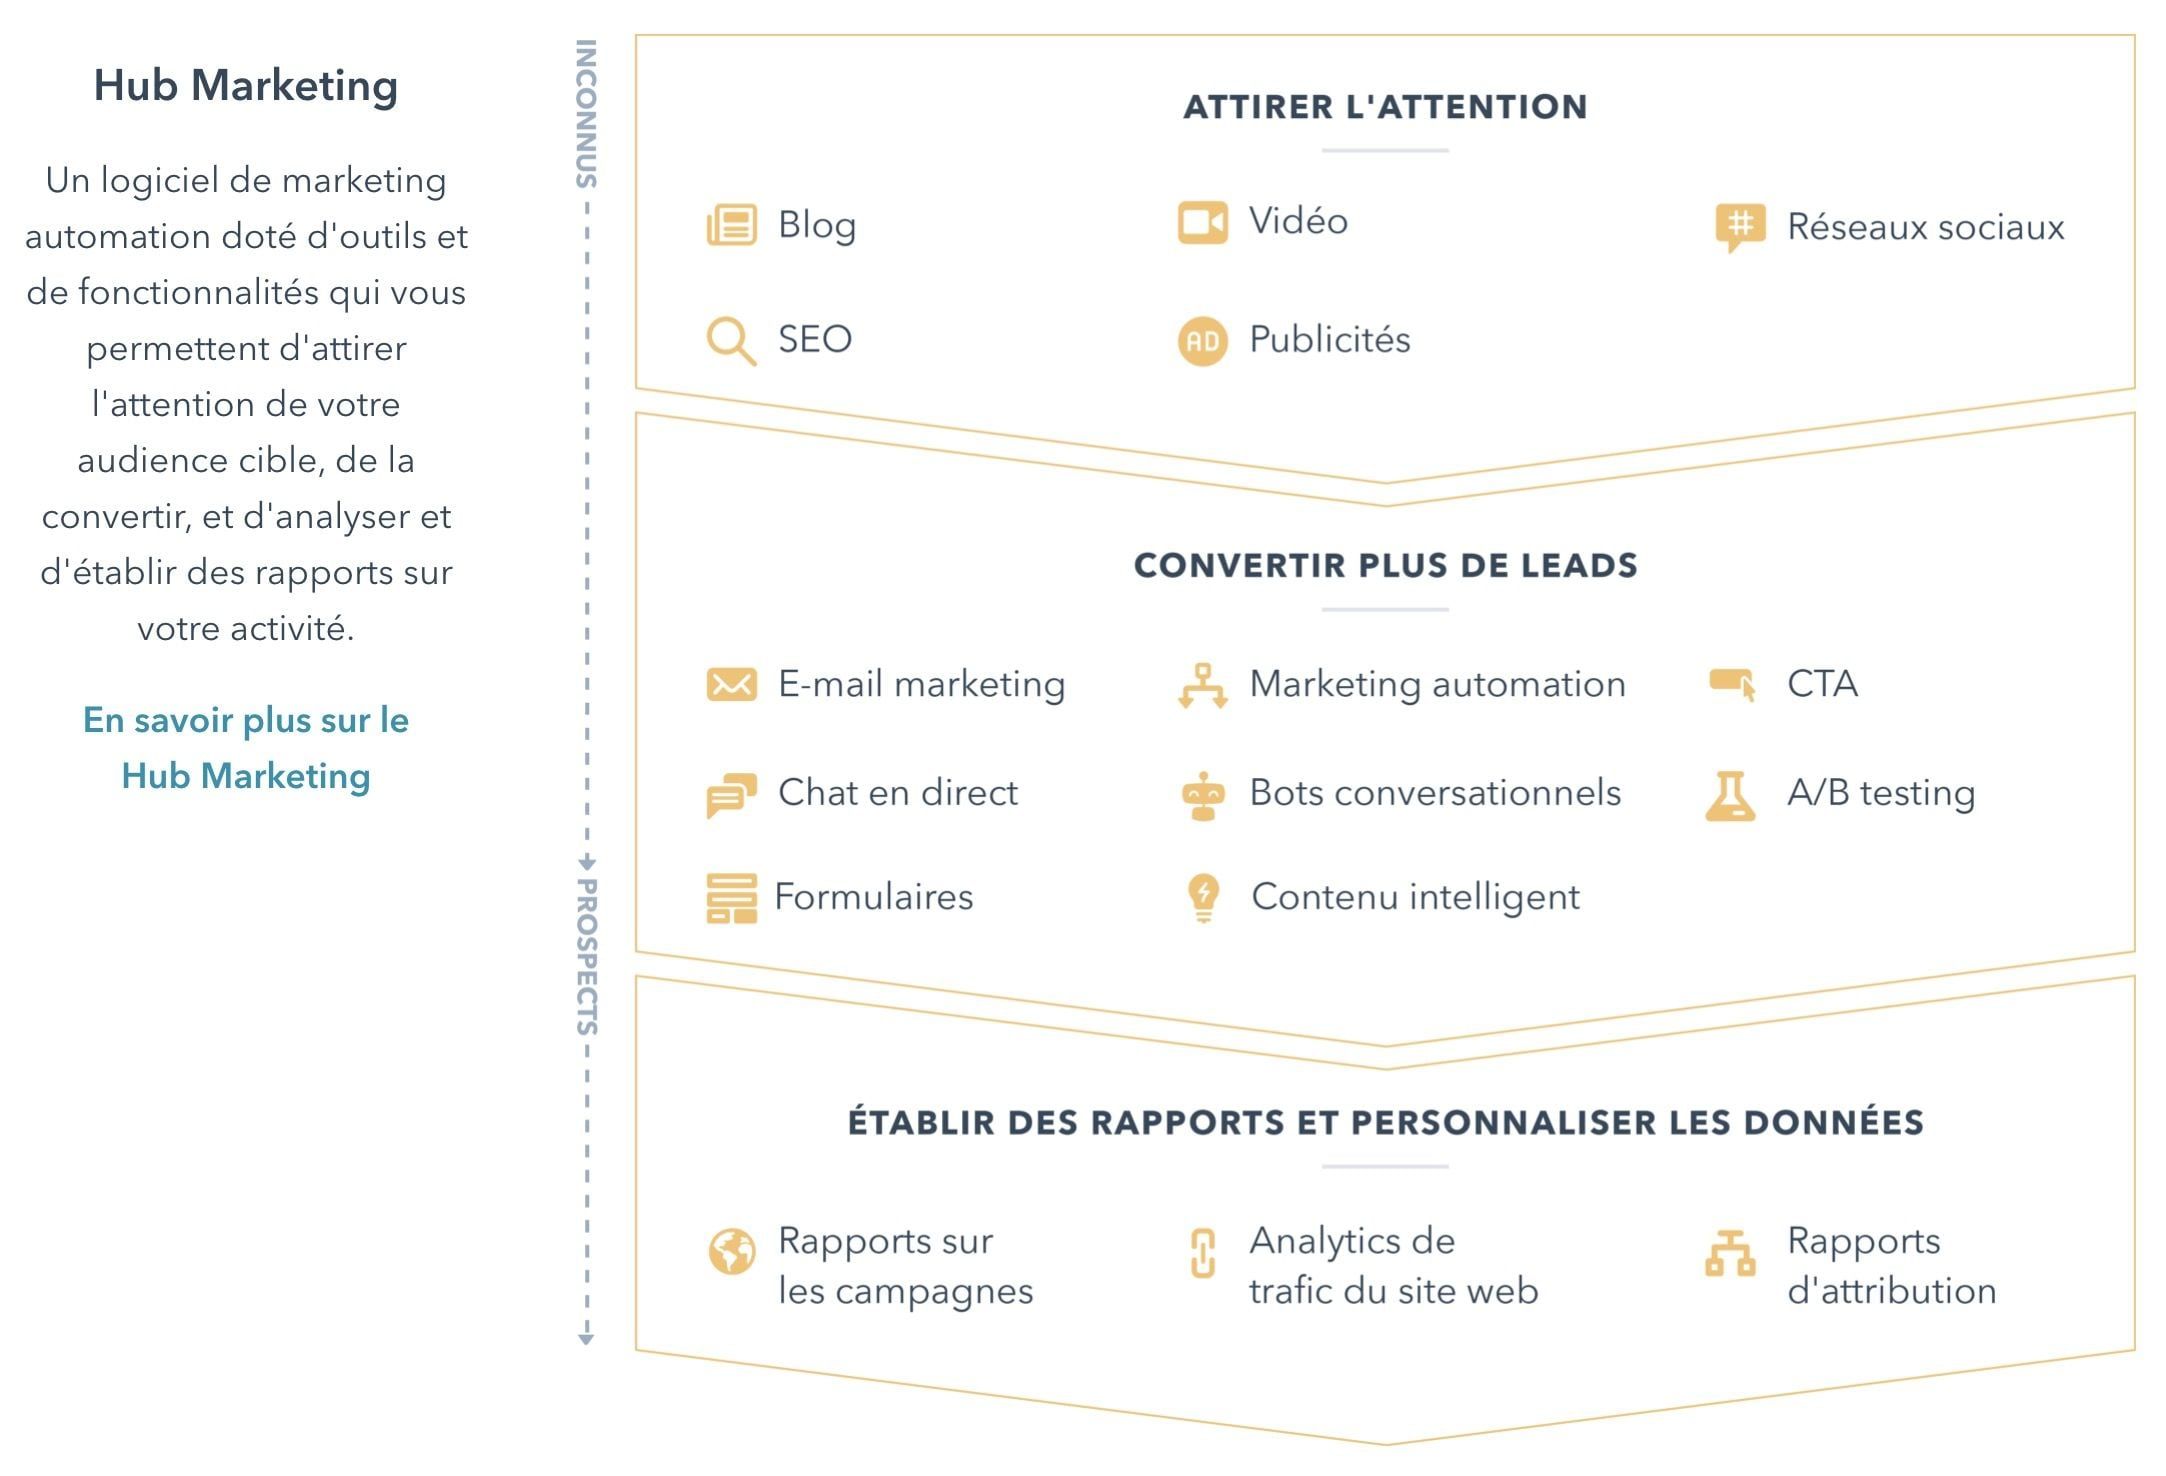 hubspot marketing fonctionnalites